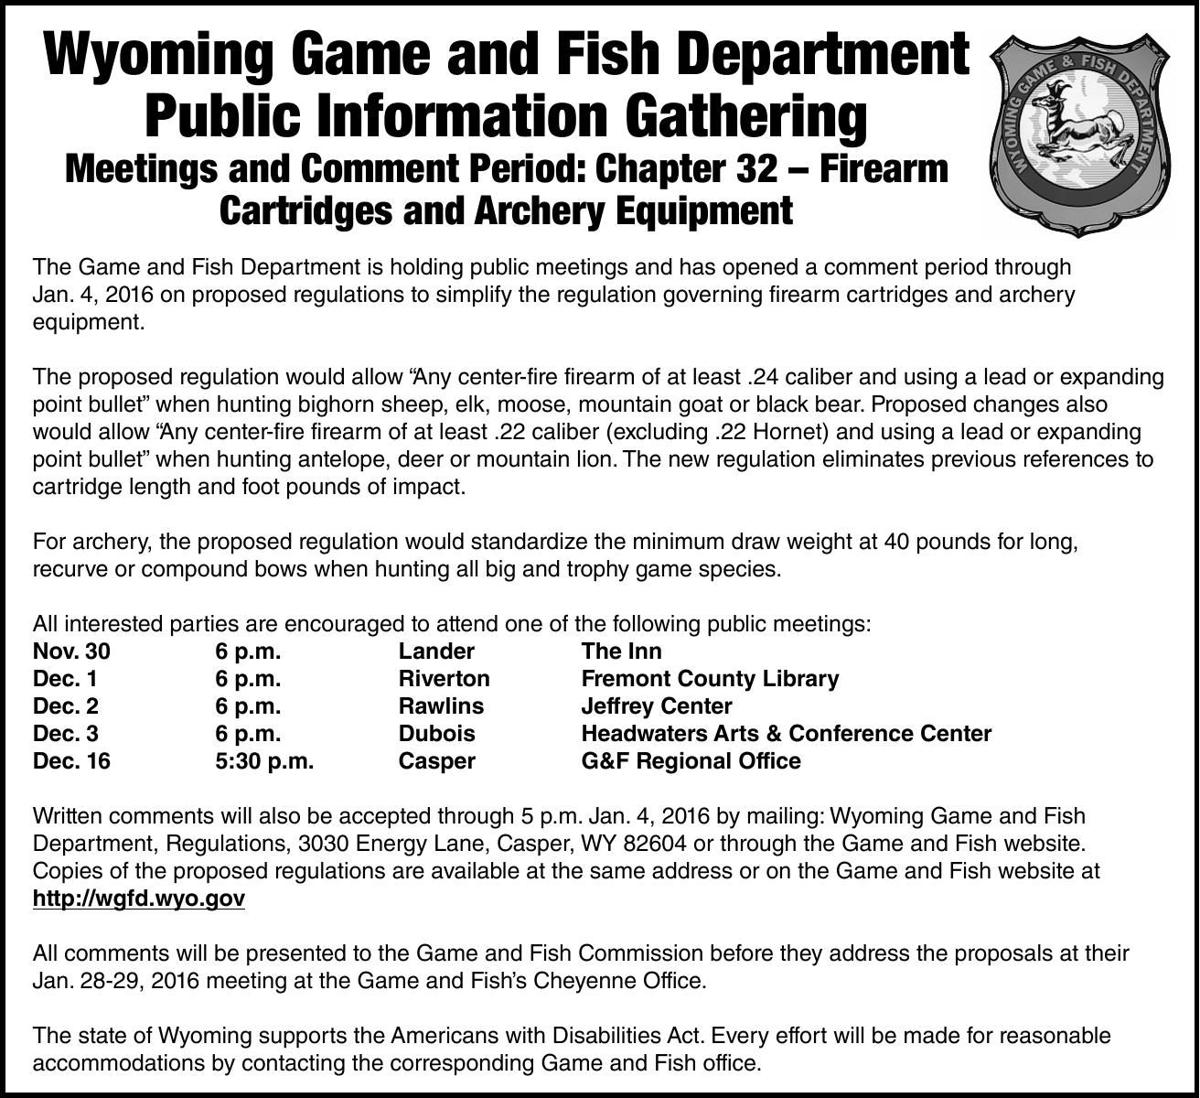 Fred m eiserman obituaries for Wyo game fish